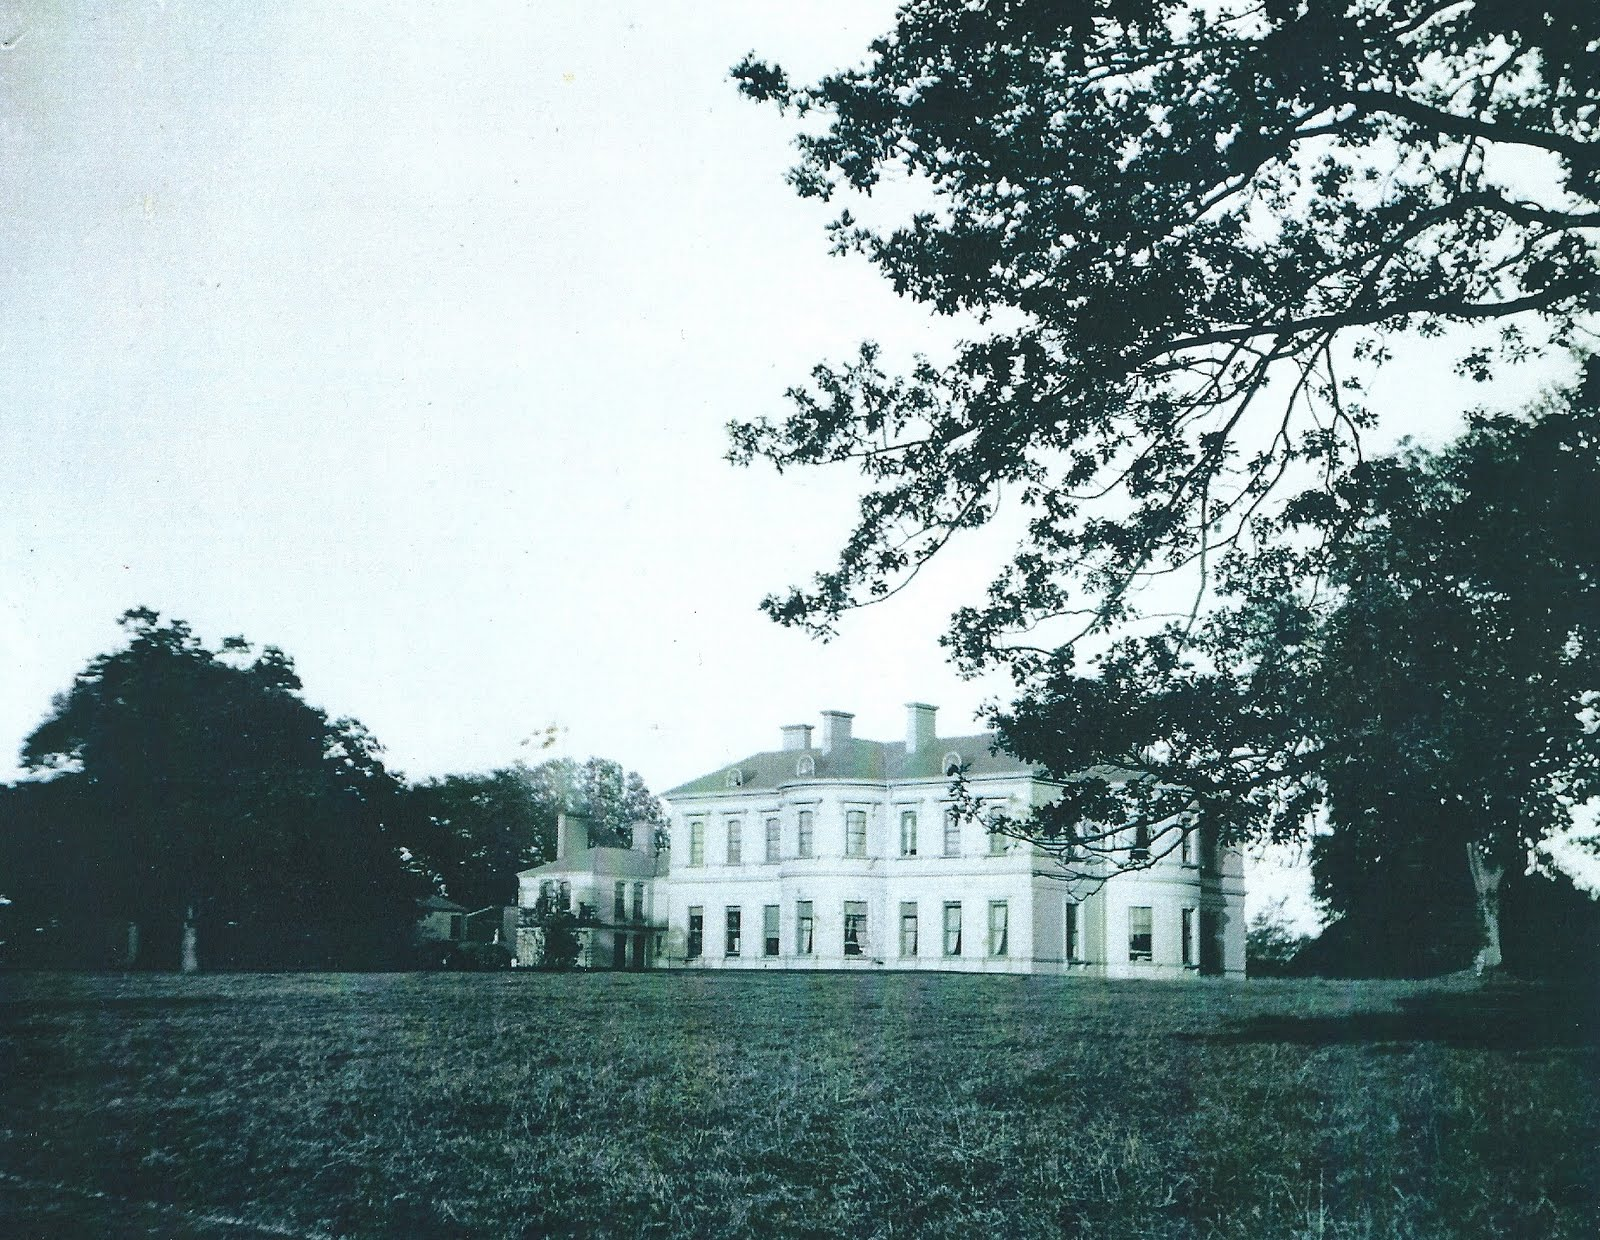 Lord Belmont in Northern Ireland: Orangefield House